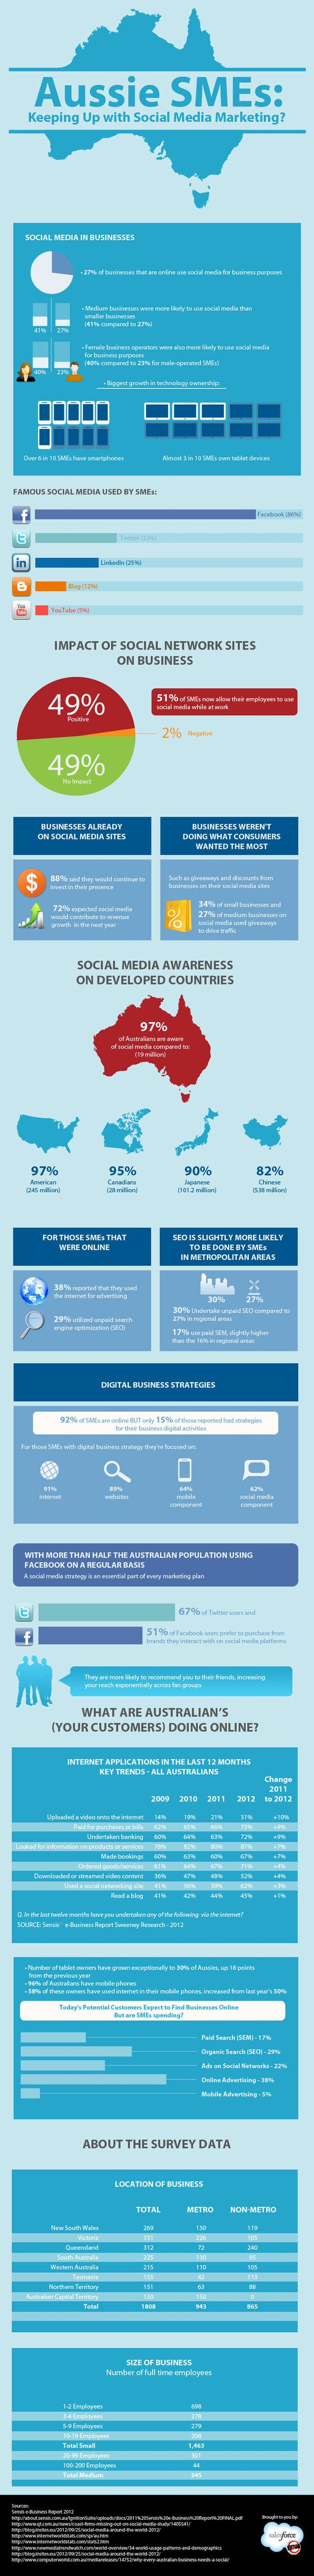 Small Australian businesses and social media [infographic]